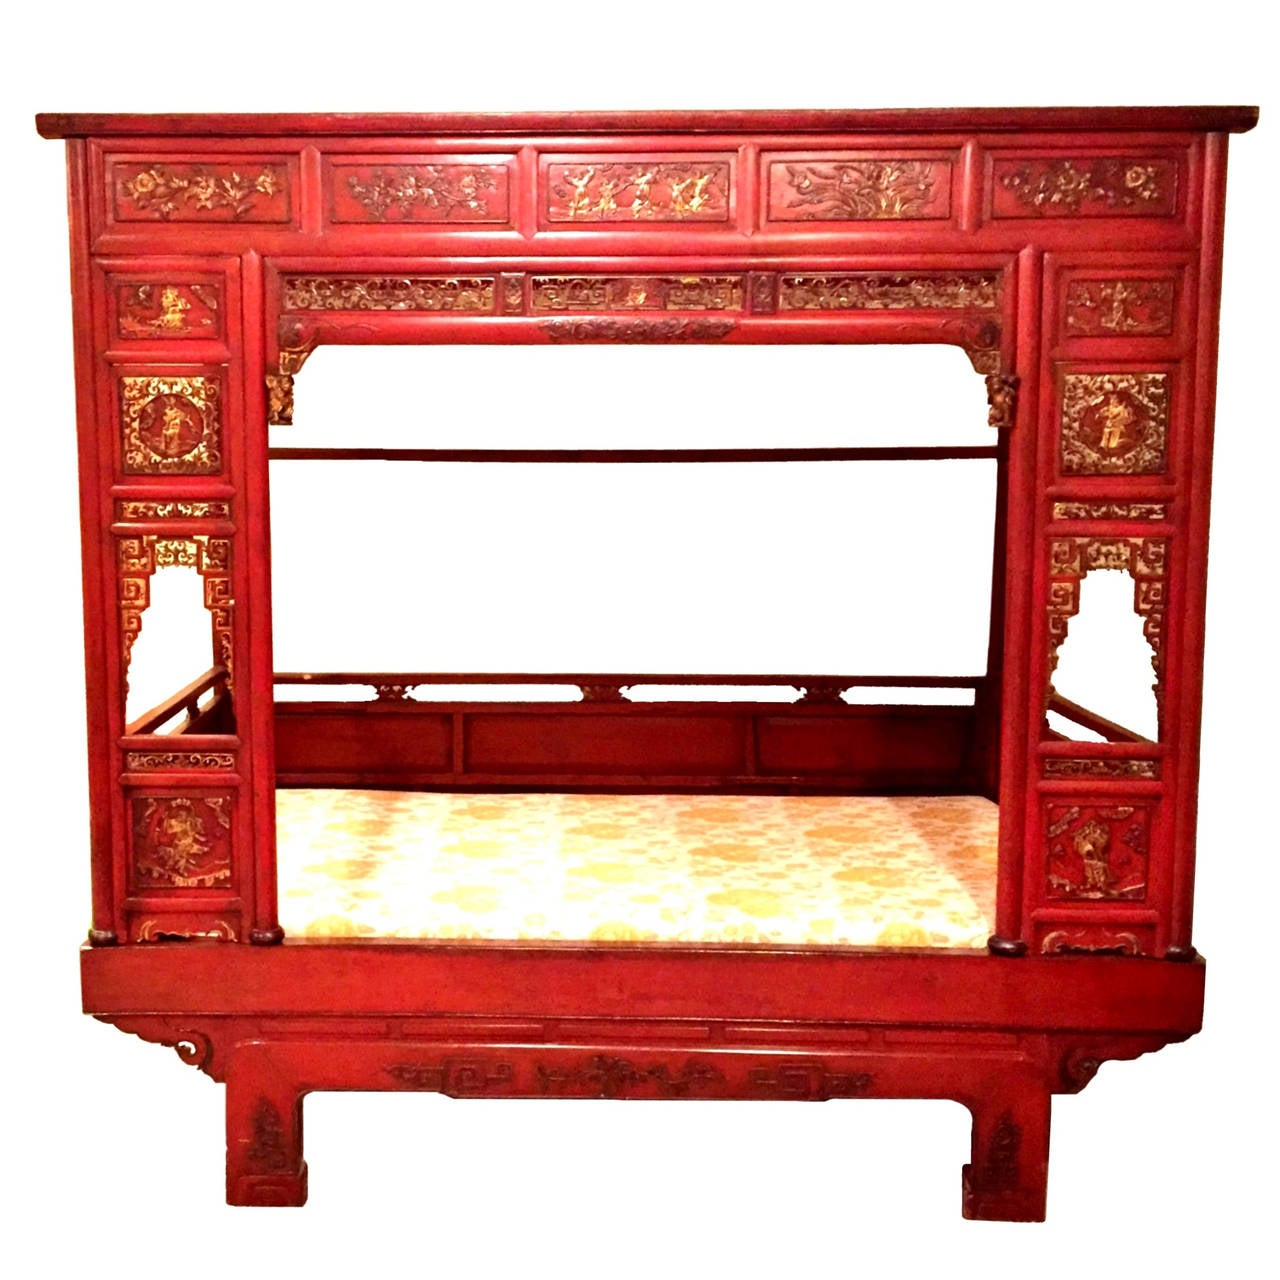 Spectacular chinese antique red lacquer bed 19th century for Red chinese furniture